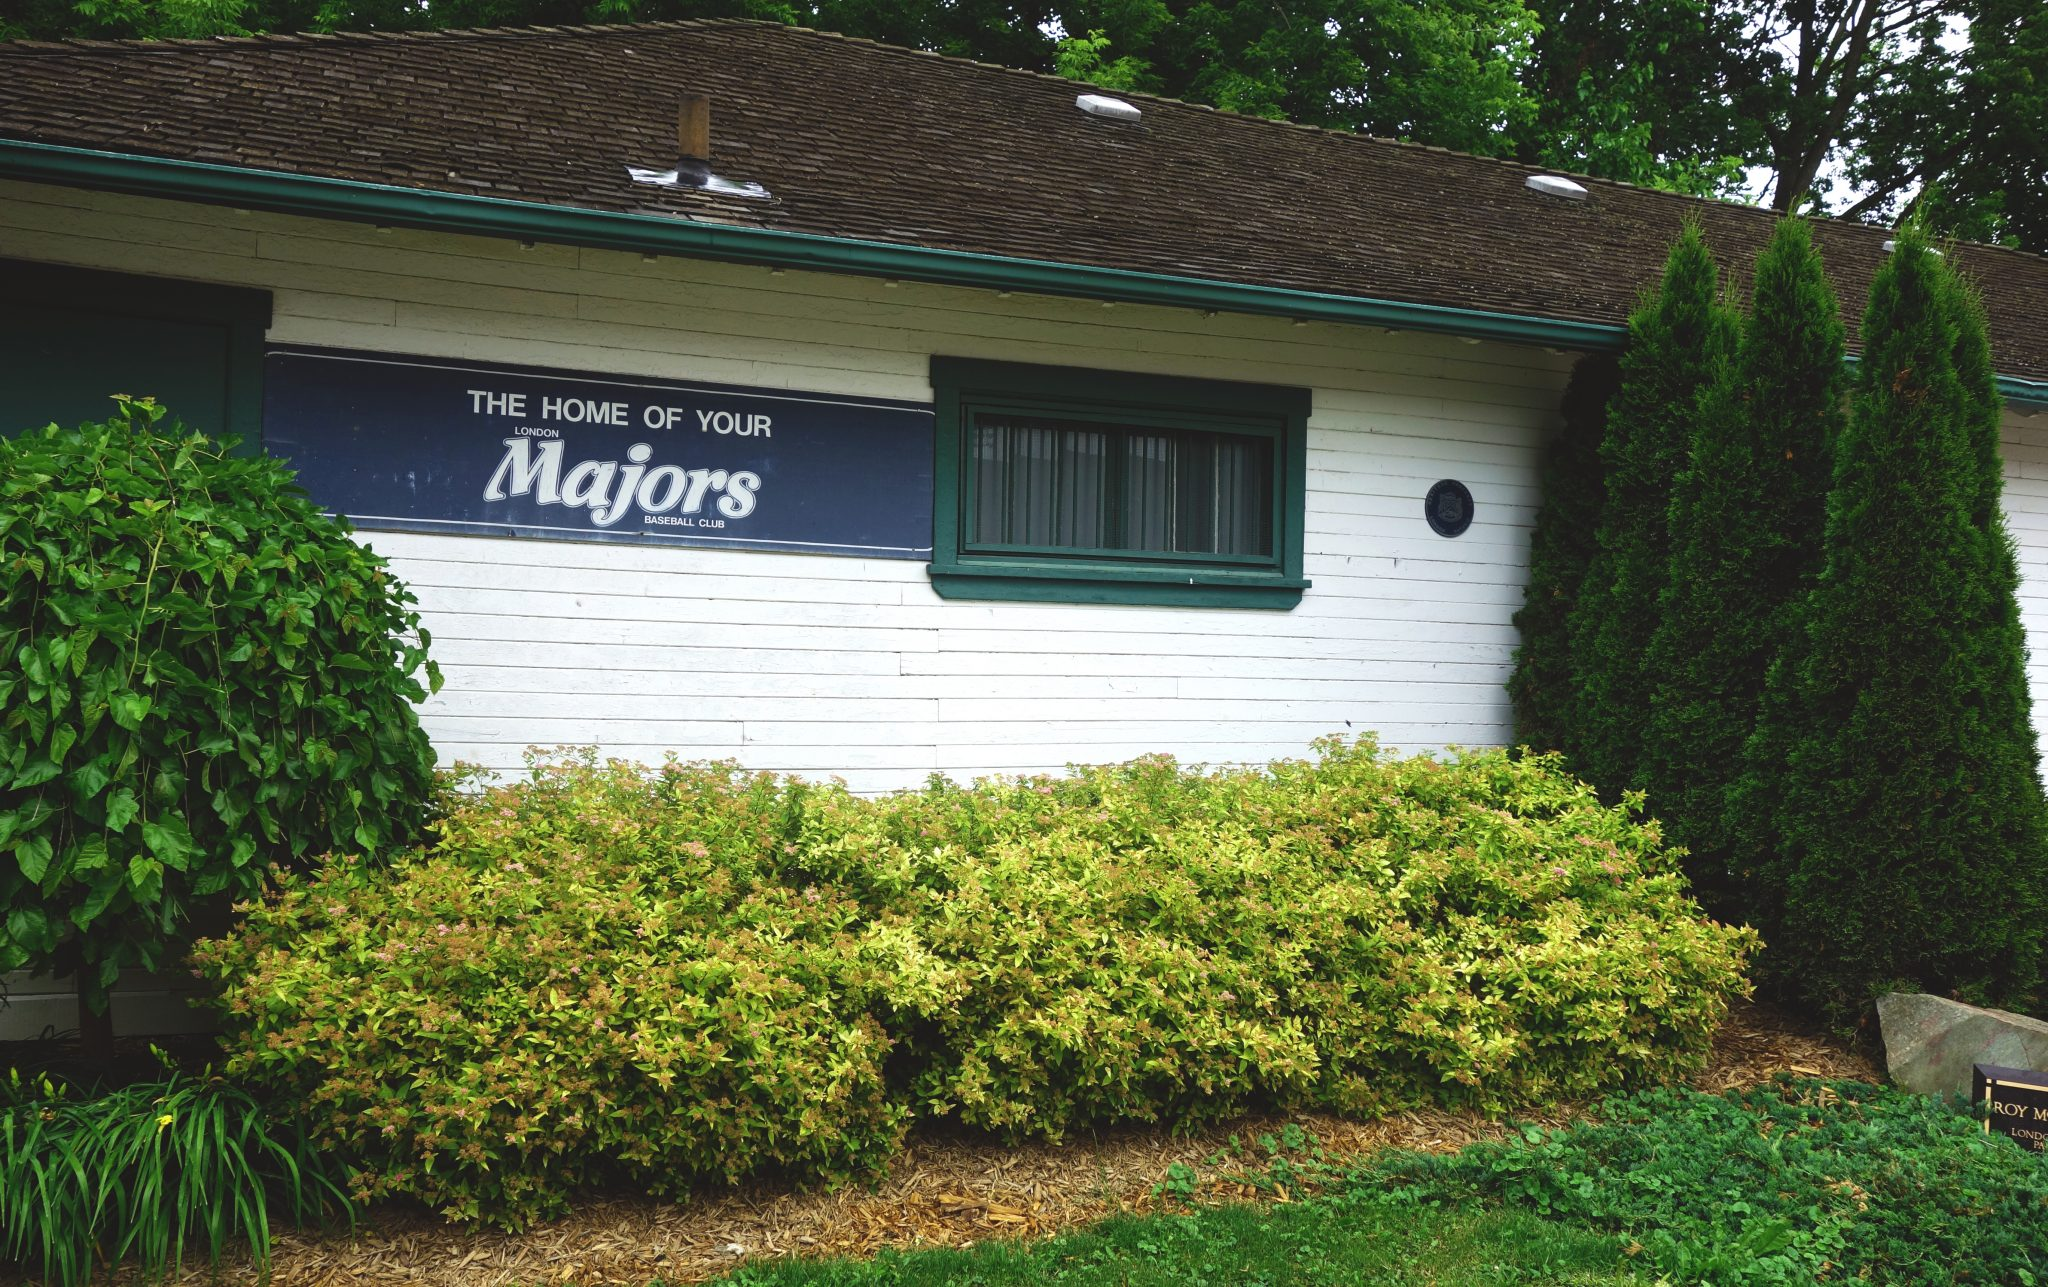 5 Facts You May Not Know About Labatt Park